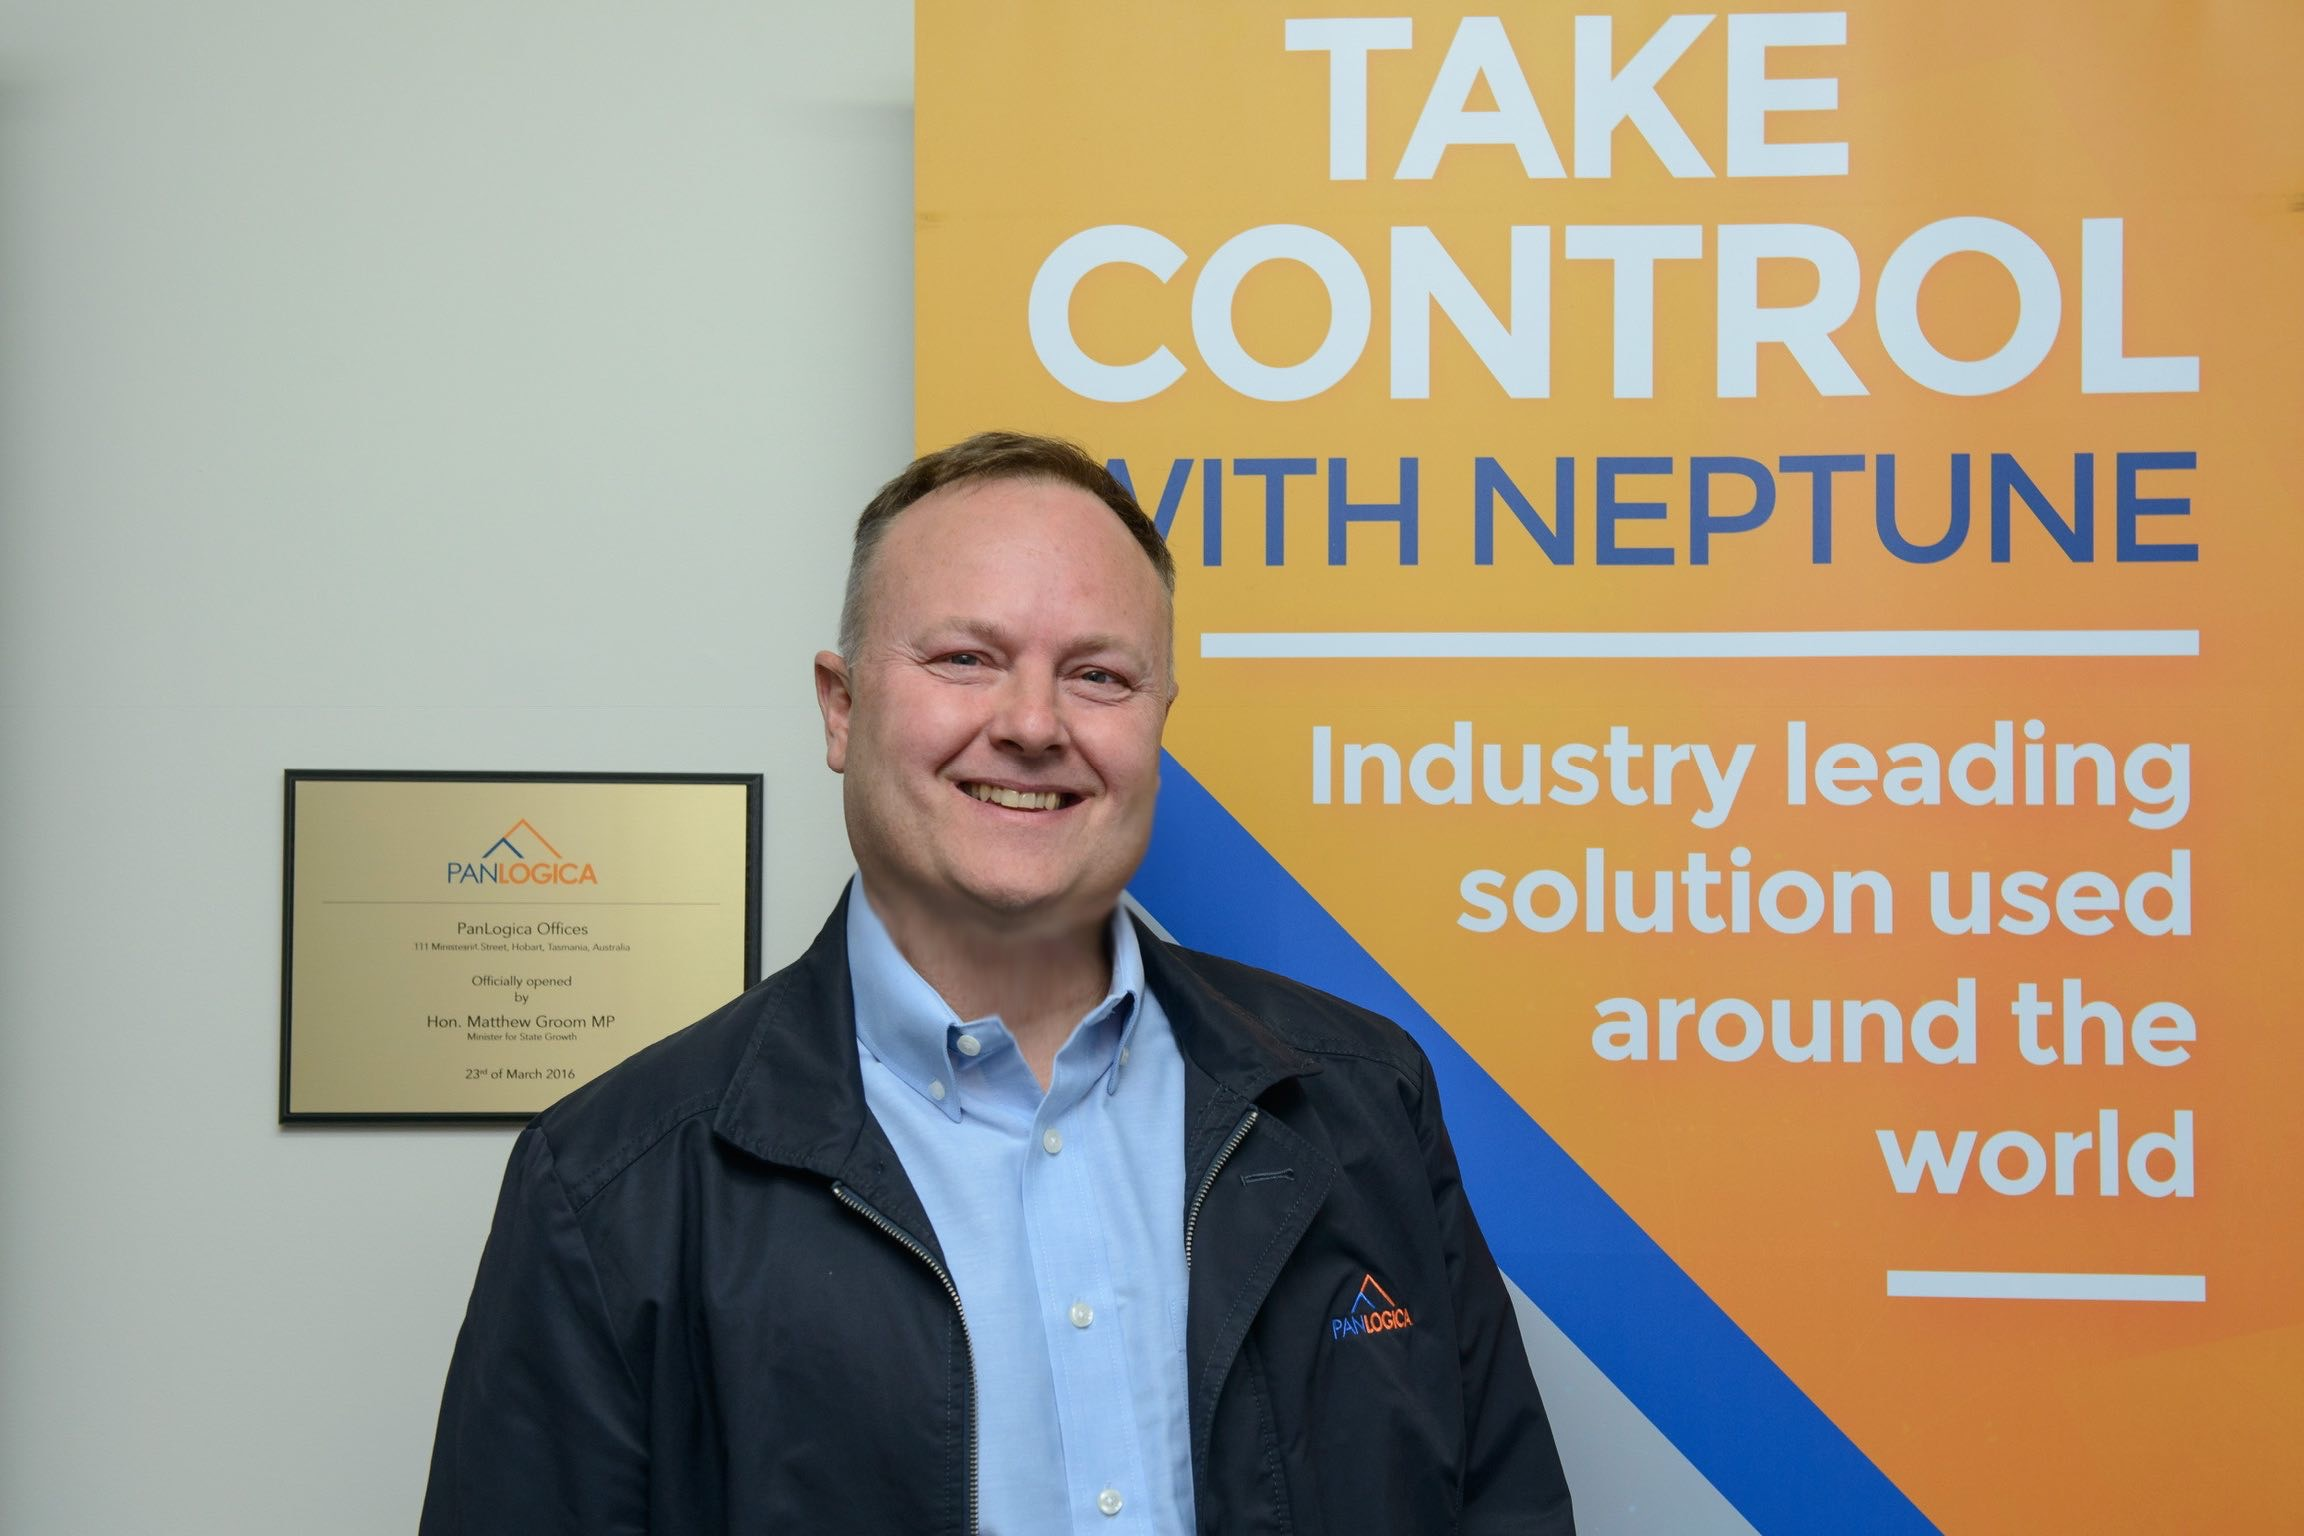 Dr David Wright, Founder and CEO of PanLogica Pty Ltd